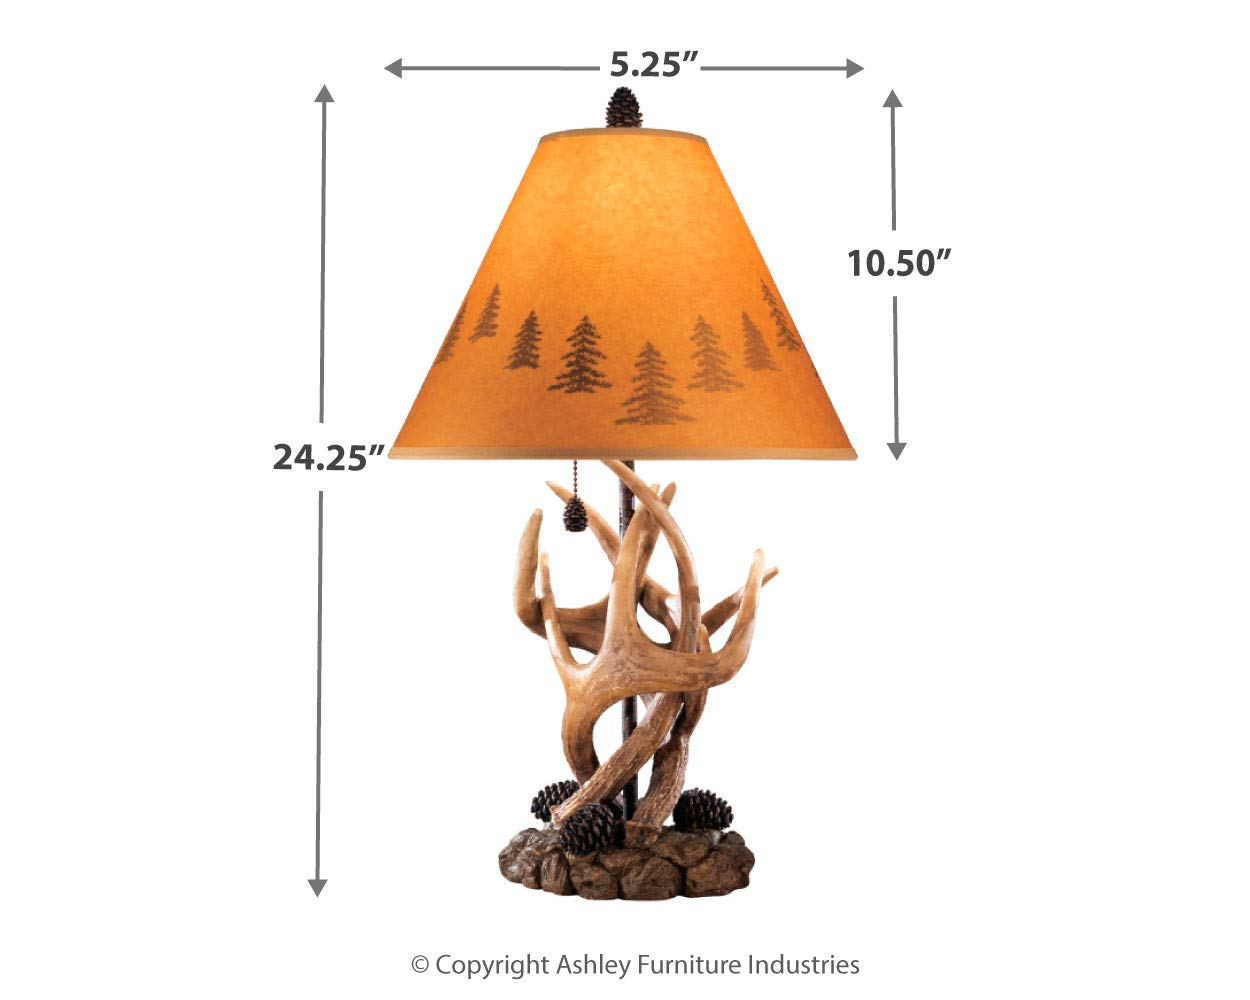 Ashley Furniture Signature Design - Derek Antler Table Lamps - Mountain Style Shades - Set of 2 - Natural Finish by Signature Design by Ashley (Image #5)